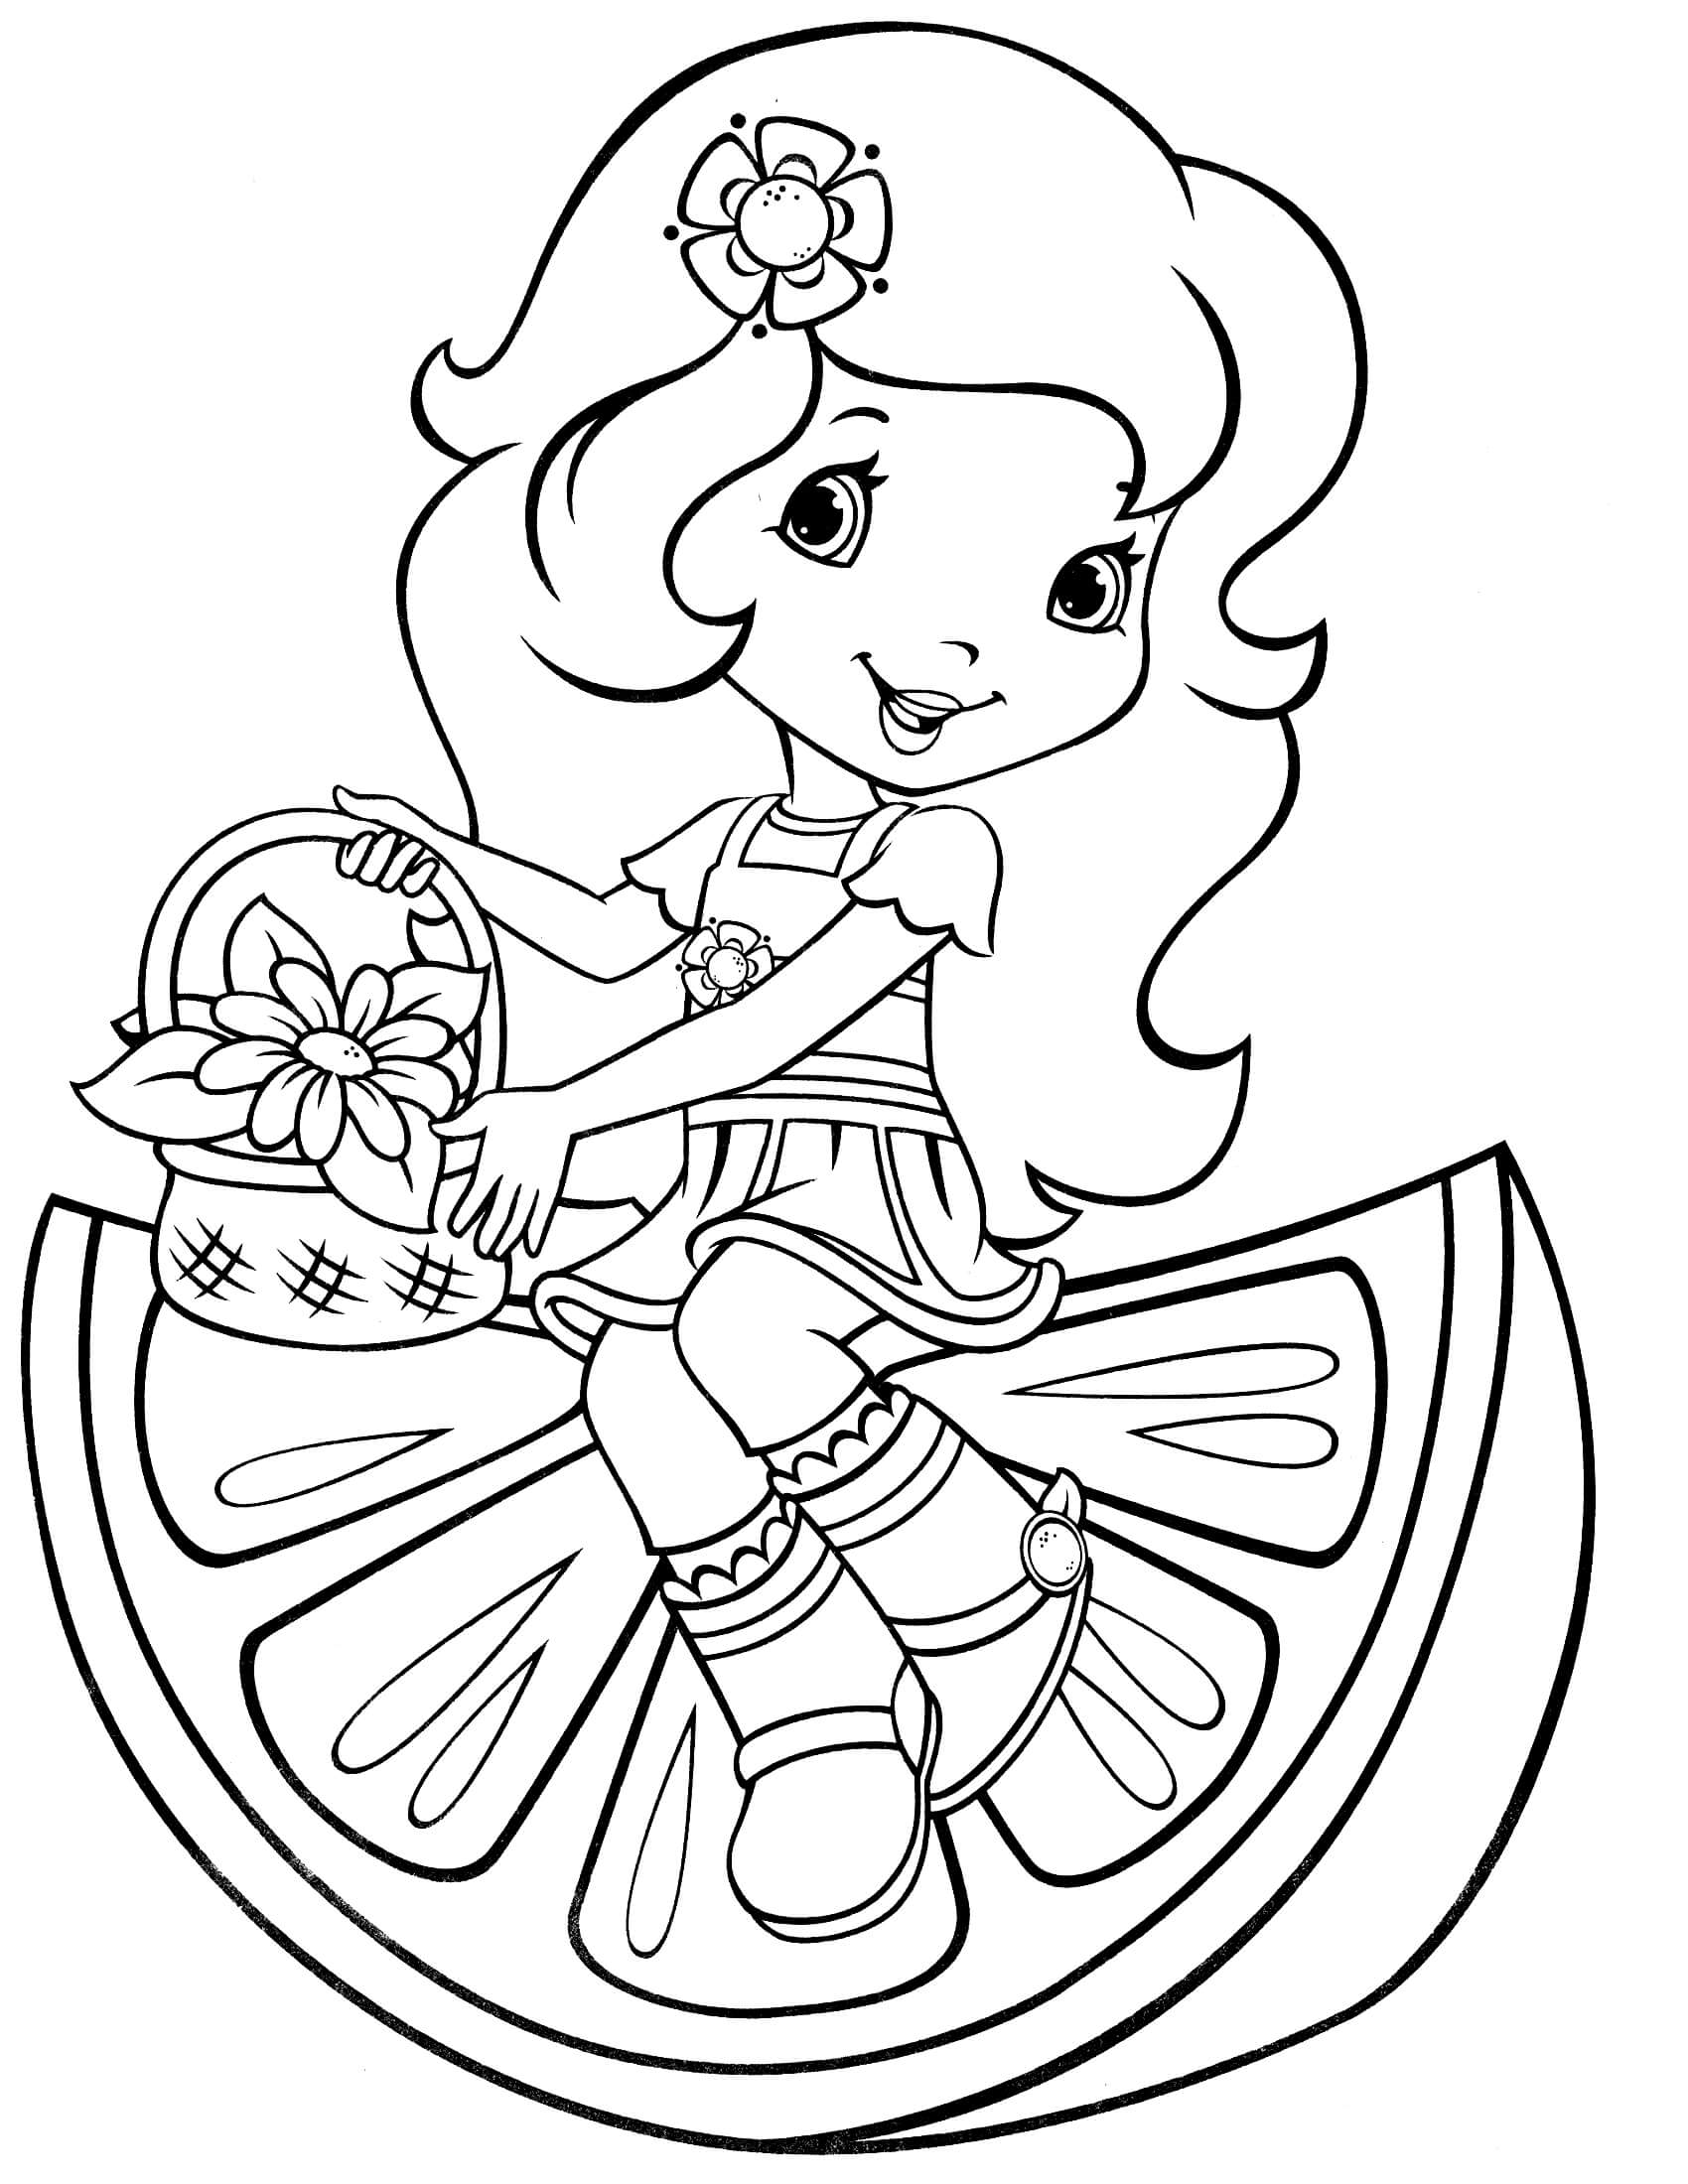 strawberry shortcake pictures to color strawberry shortcake backgrounds wallpapertag pictures to color shortcake strawberry